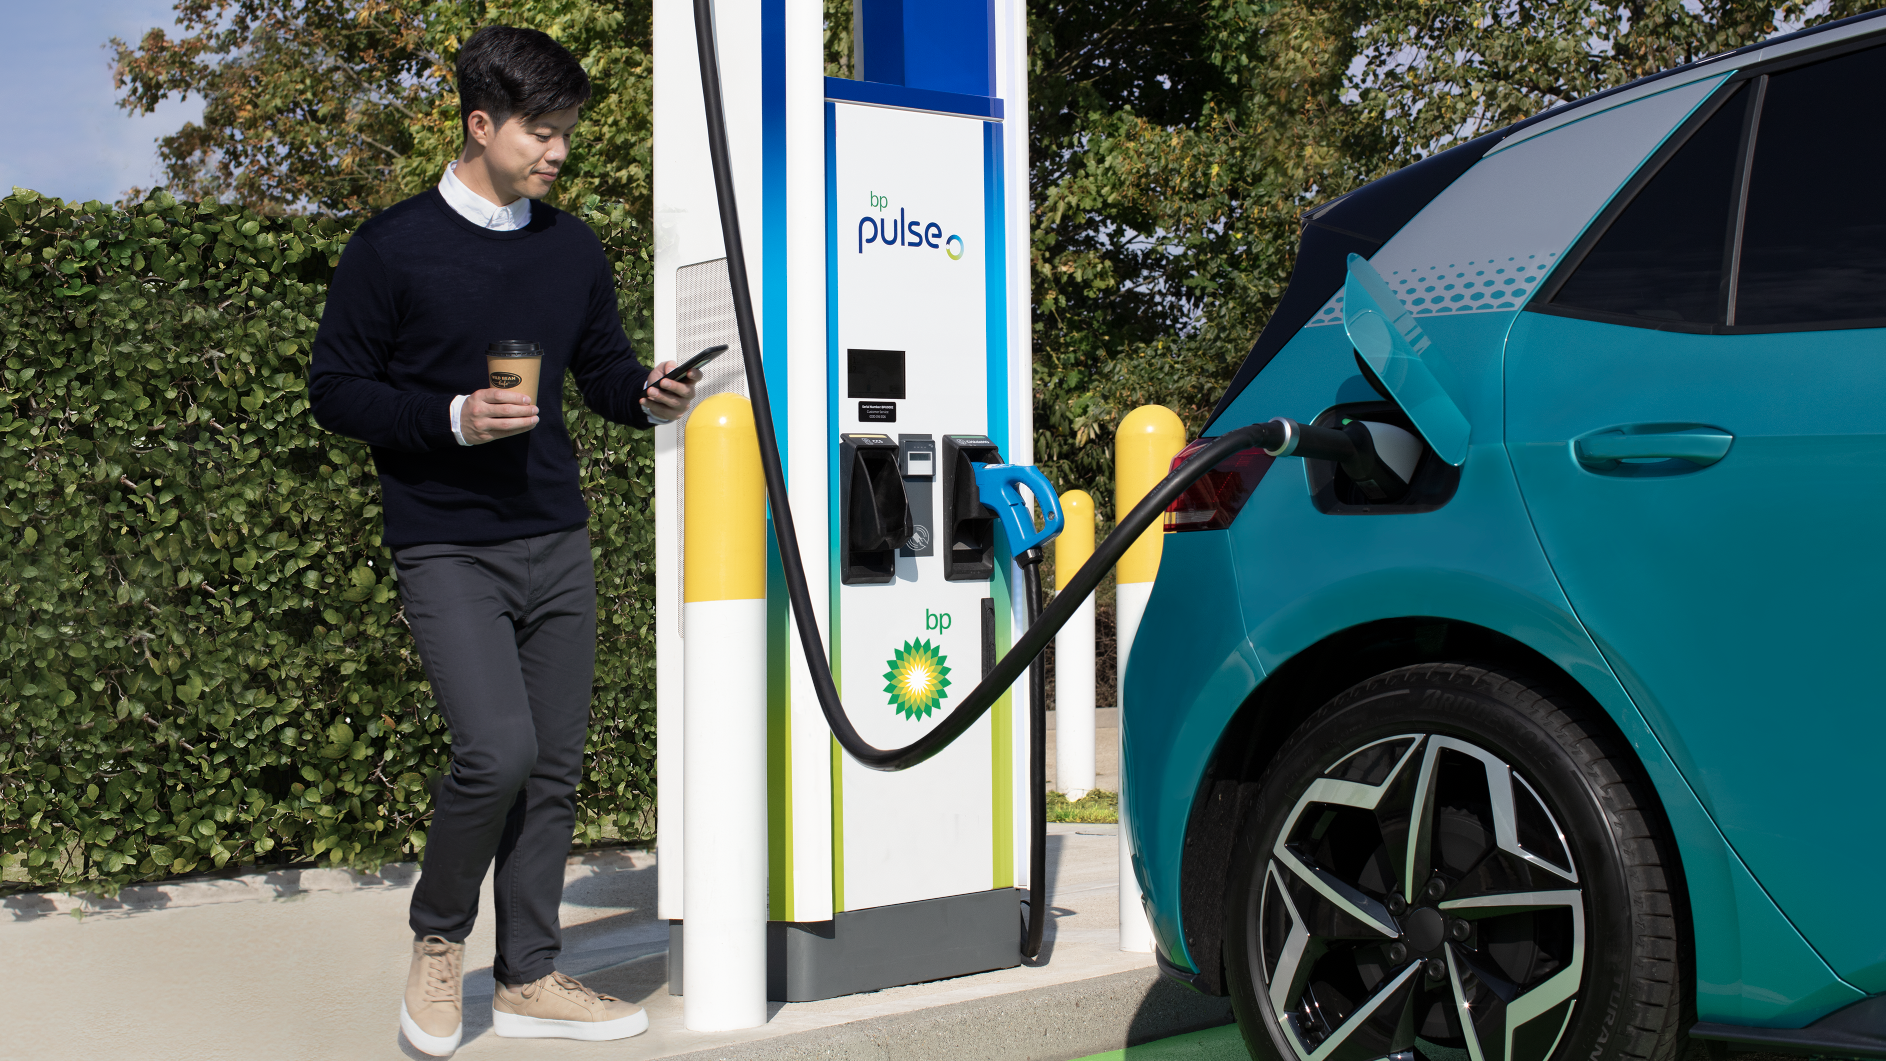 Electric Car Charging a Man looks at the App on his Smart Phone